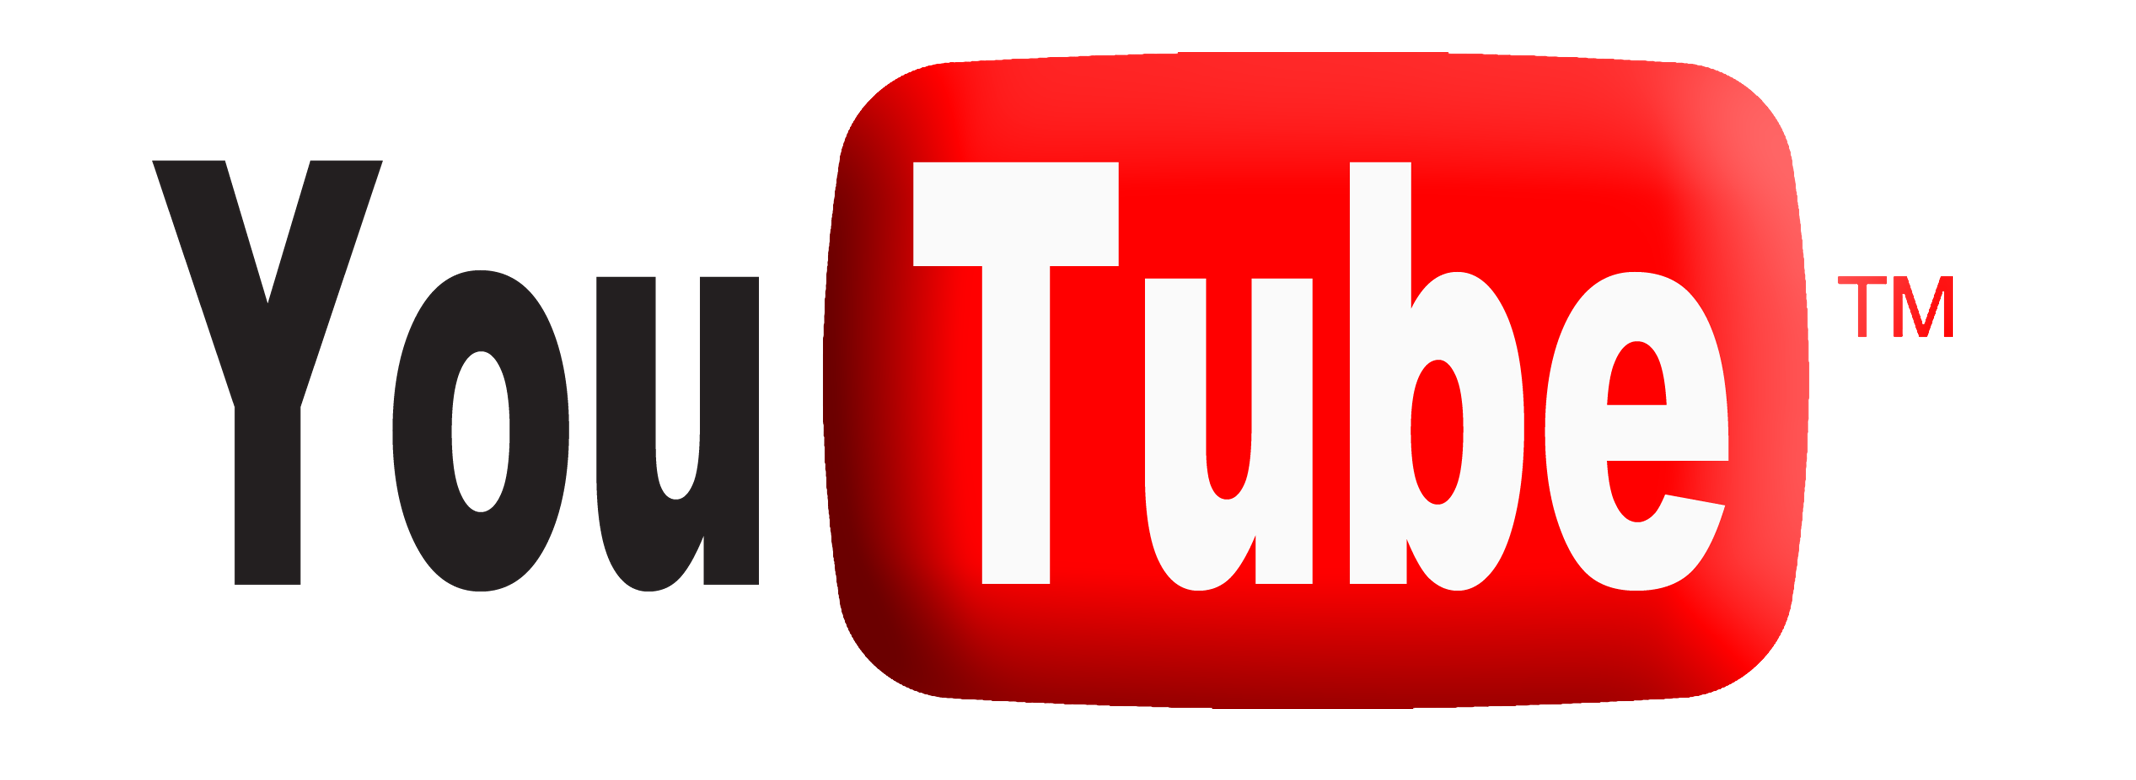 hd-youtube-logo-design-download-png - Youtube HD PNG